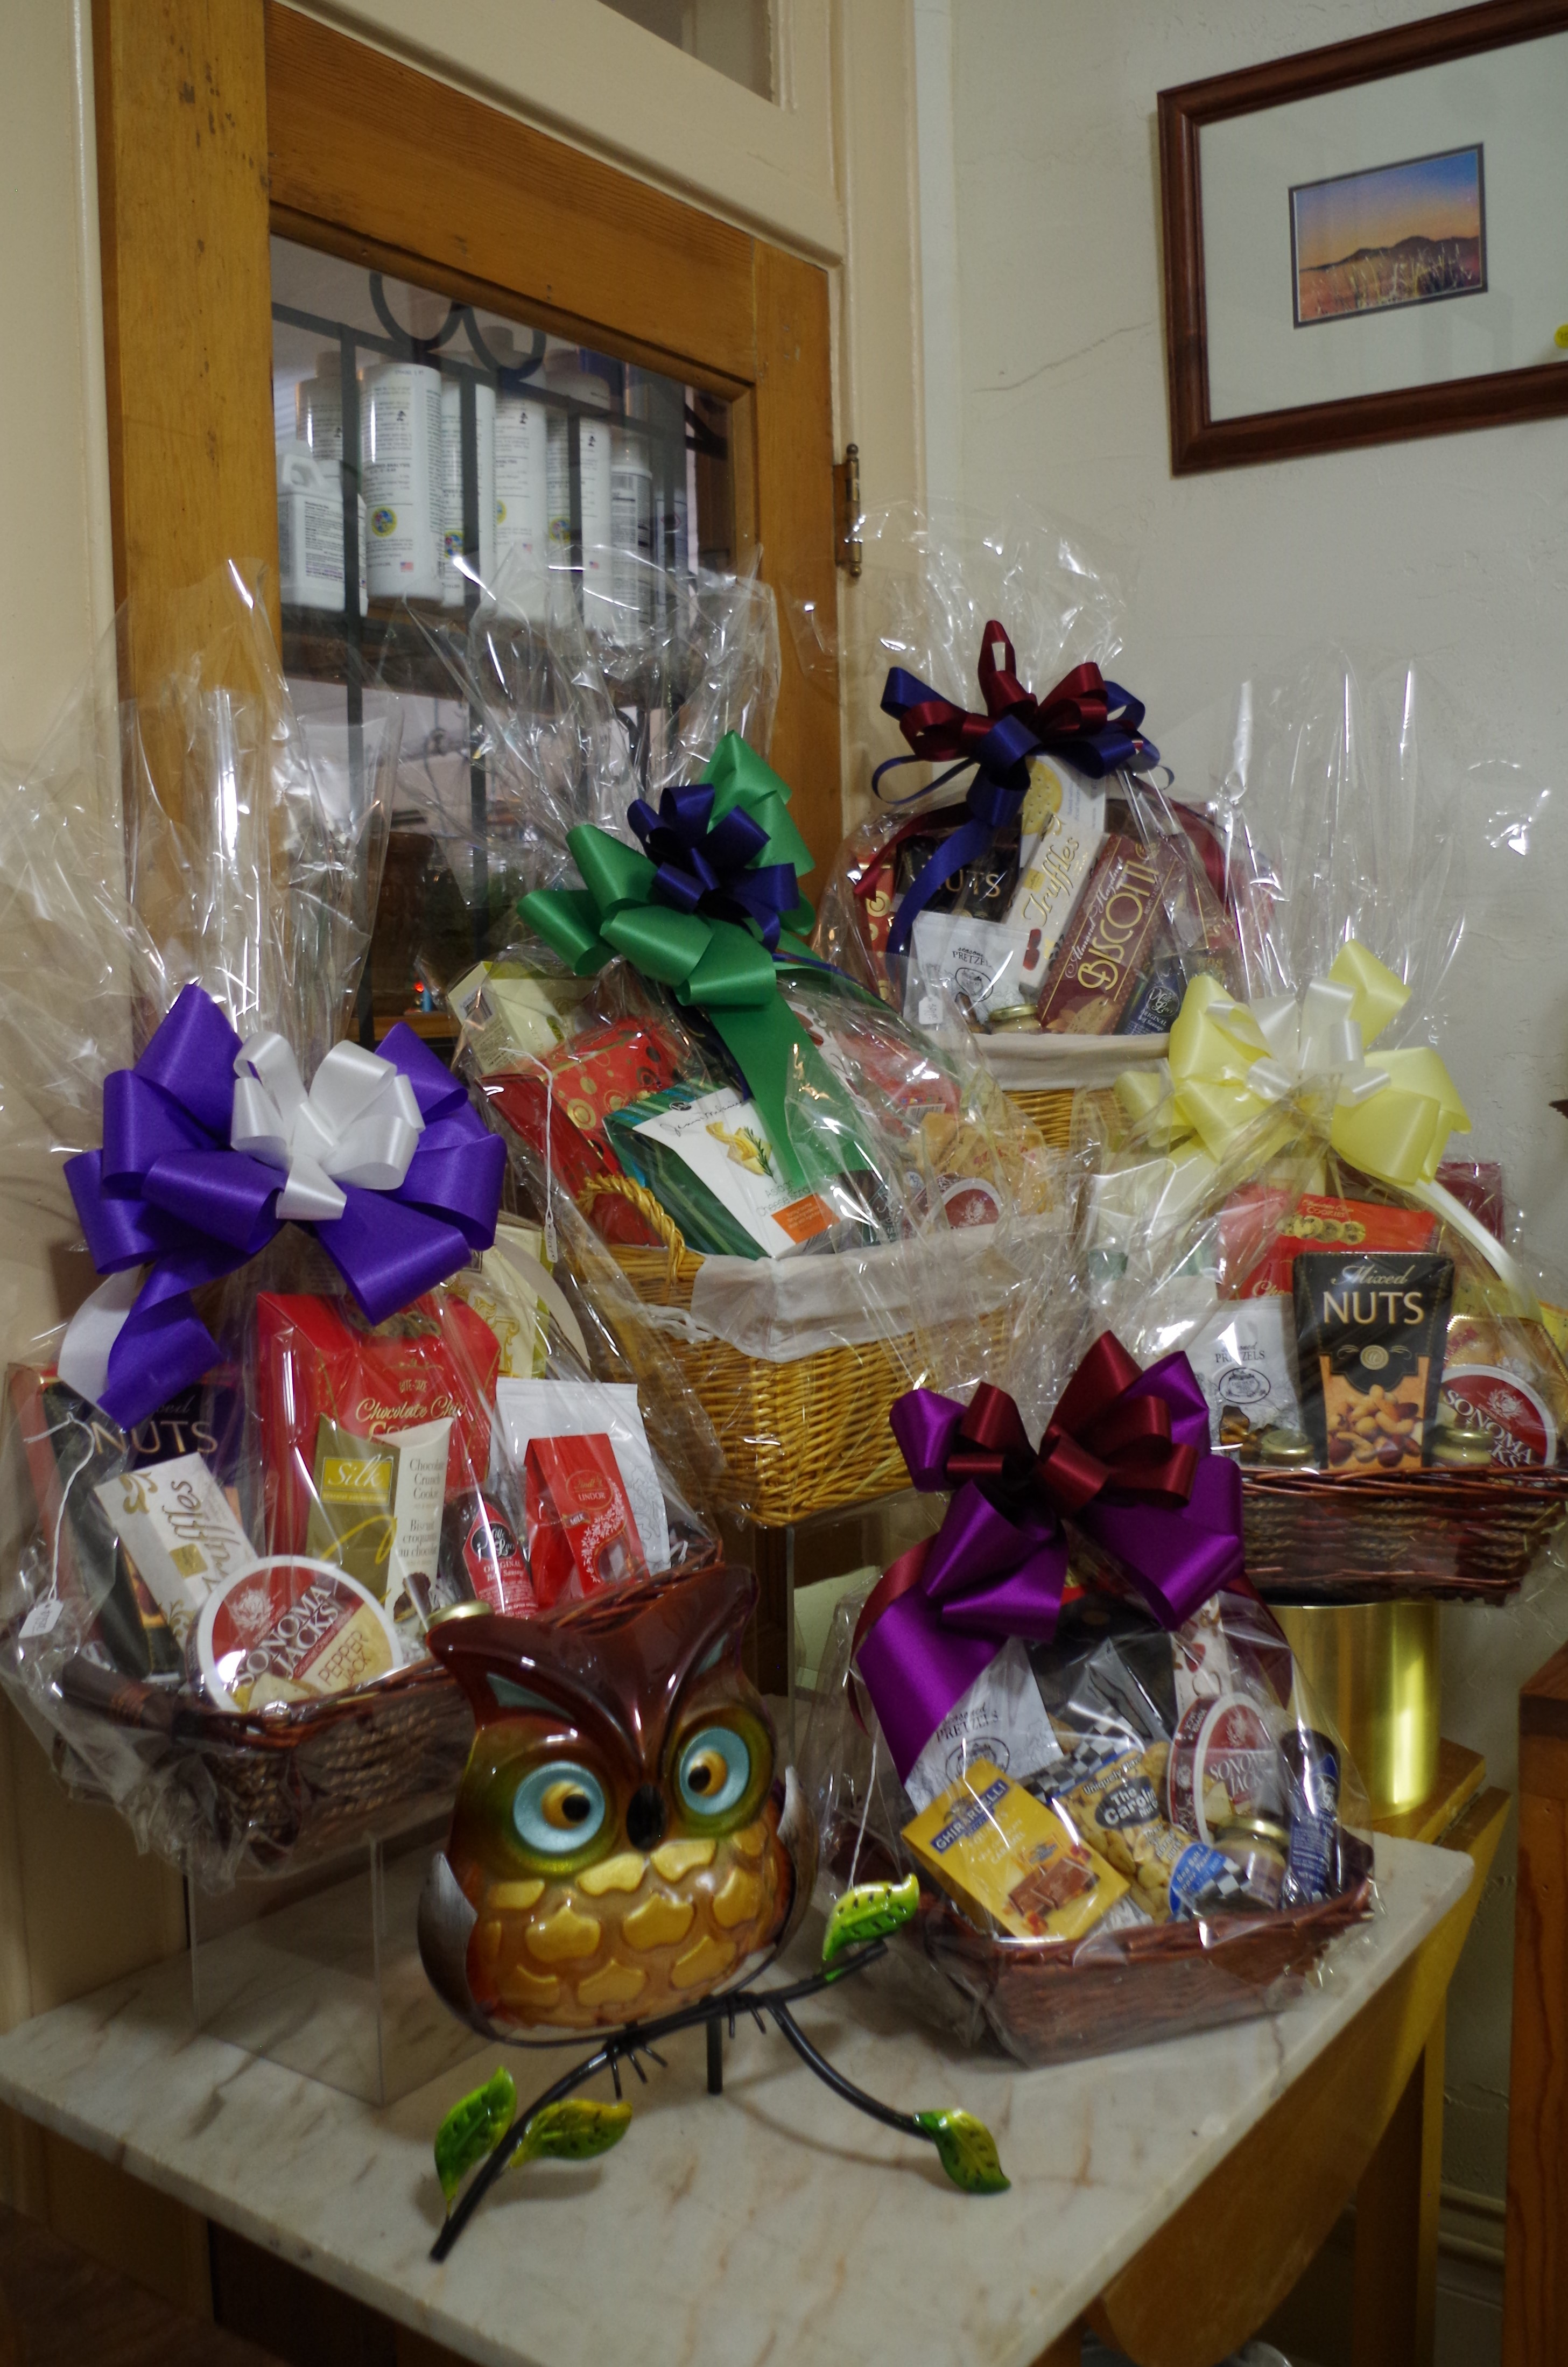 The Basket Case (Gift Baskets by